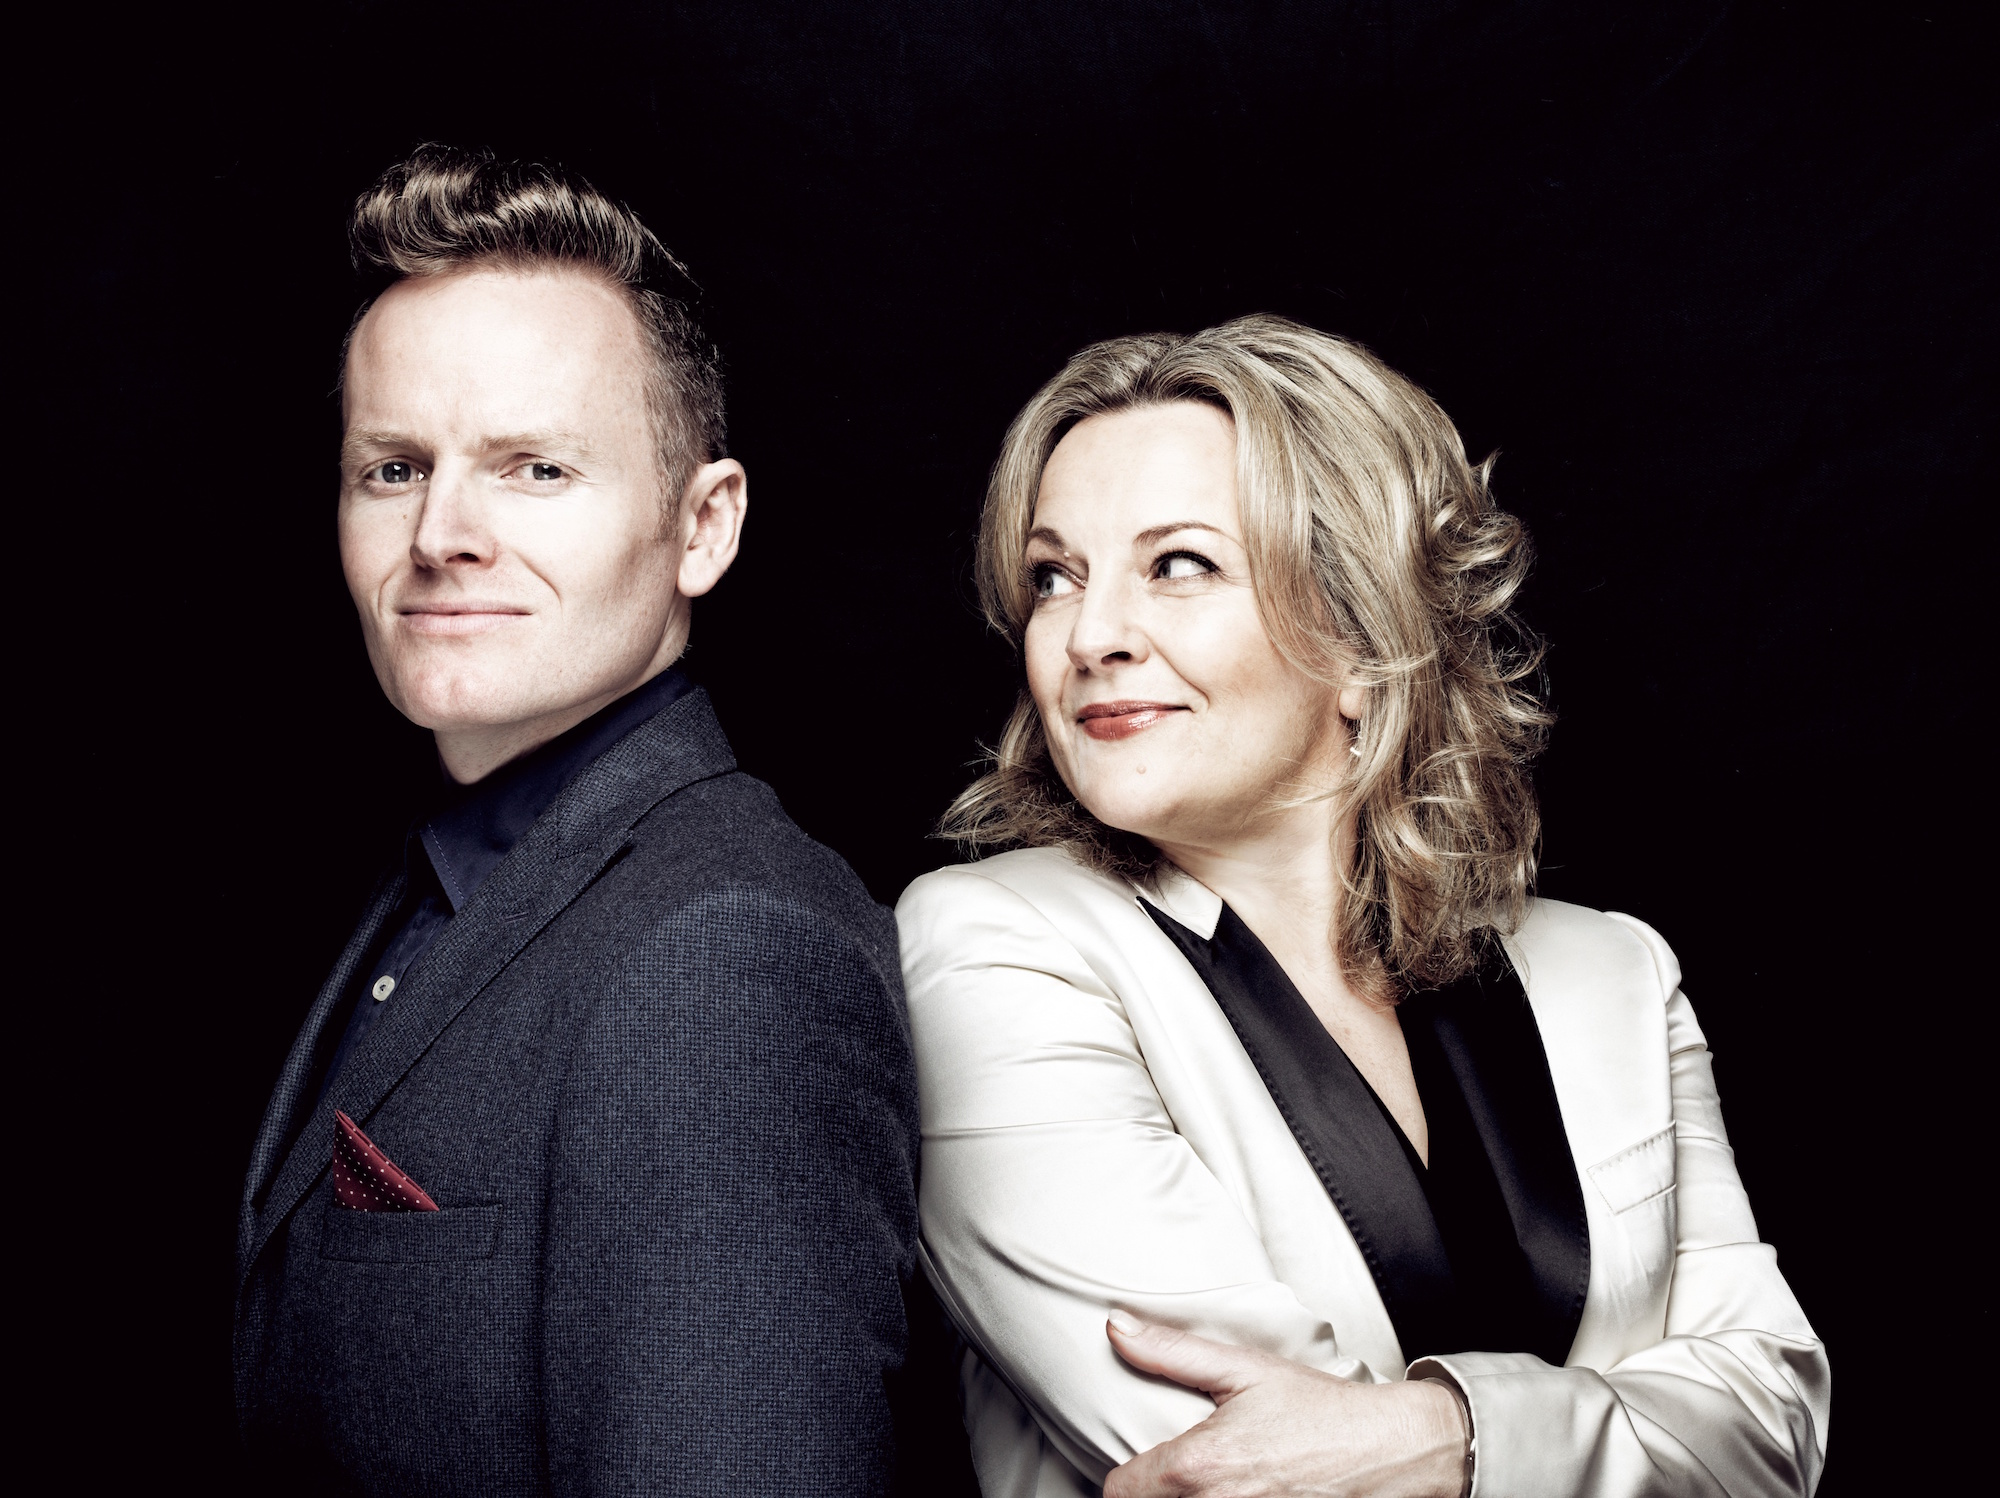 Claire Martin and Joe Stilgoe - Just The Two Of Us - Claire Martin, Joe Stilgoe